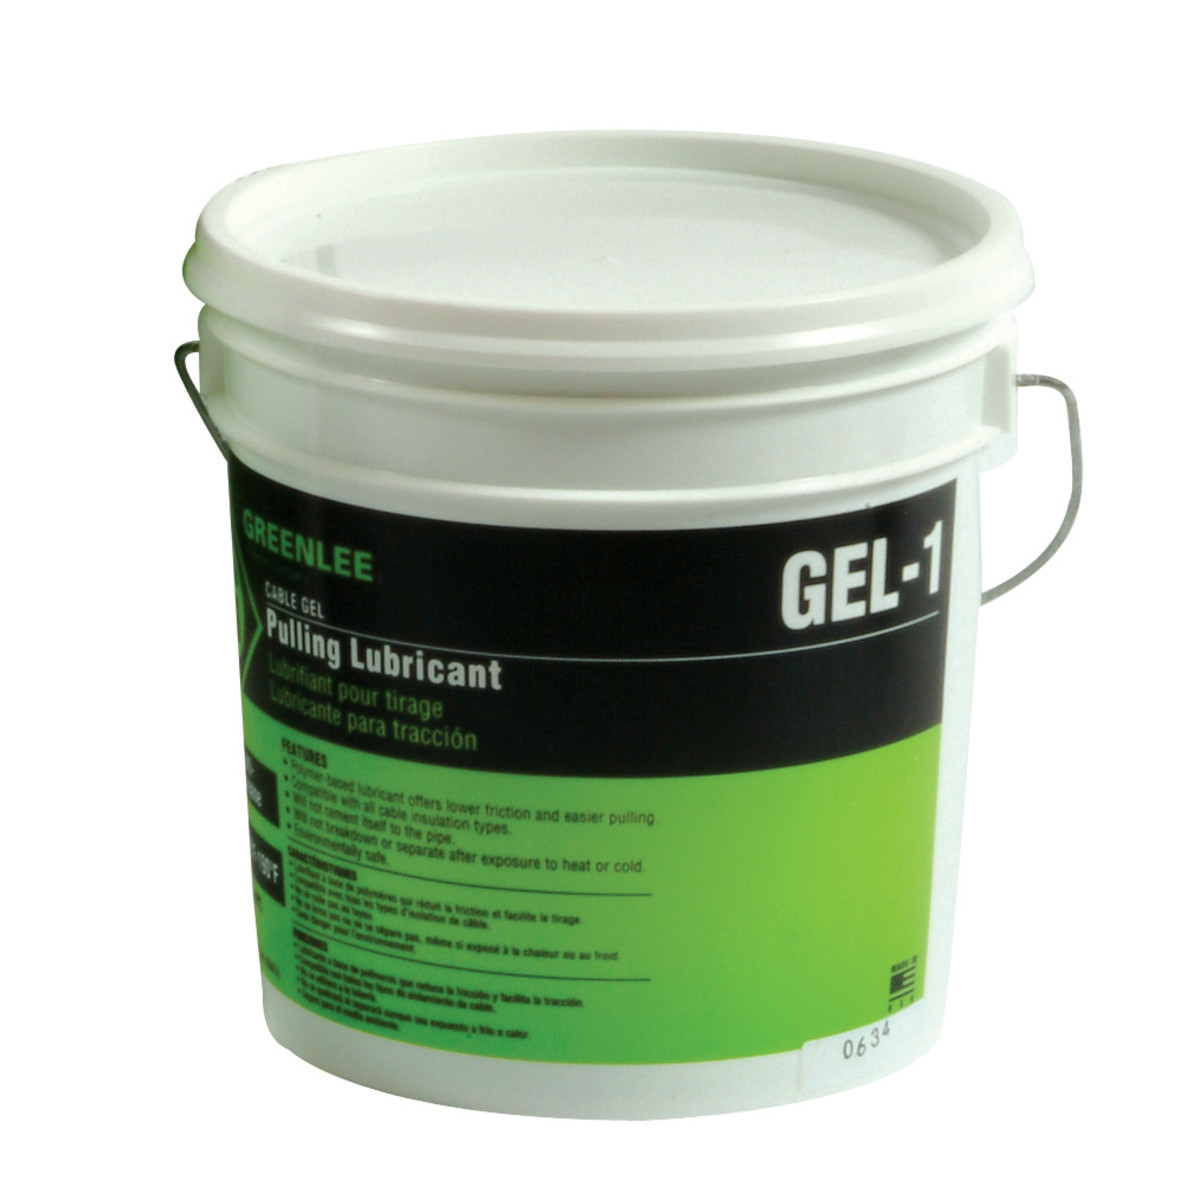 Greenlee GEL-1 Cable-Gel™ Cable Pulling Lubricant, 1-Gallon